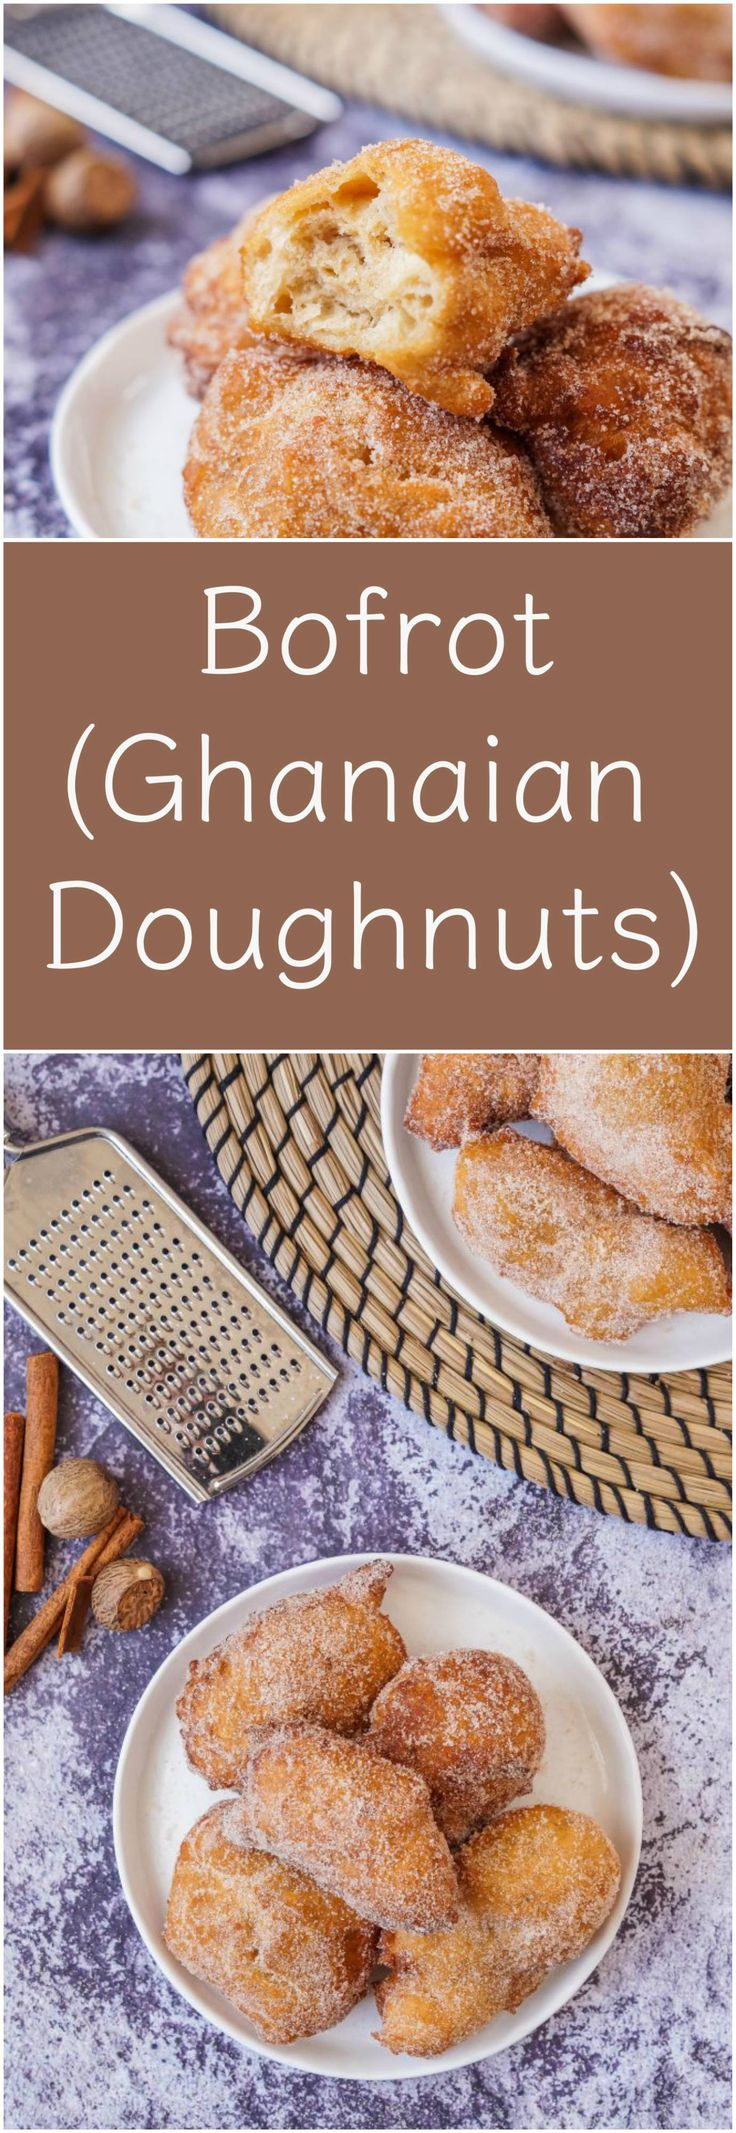 Review of the cookbook, Zoe's Ghana Kitchen by Zoe Adjonyoh. Plus a recipe for Bofrot (Puff Puff), a spiced Ghanaian doughnut.